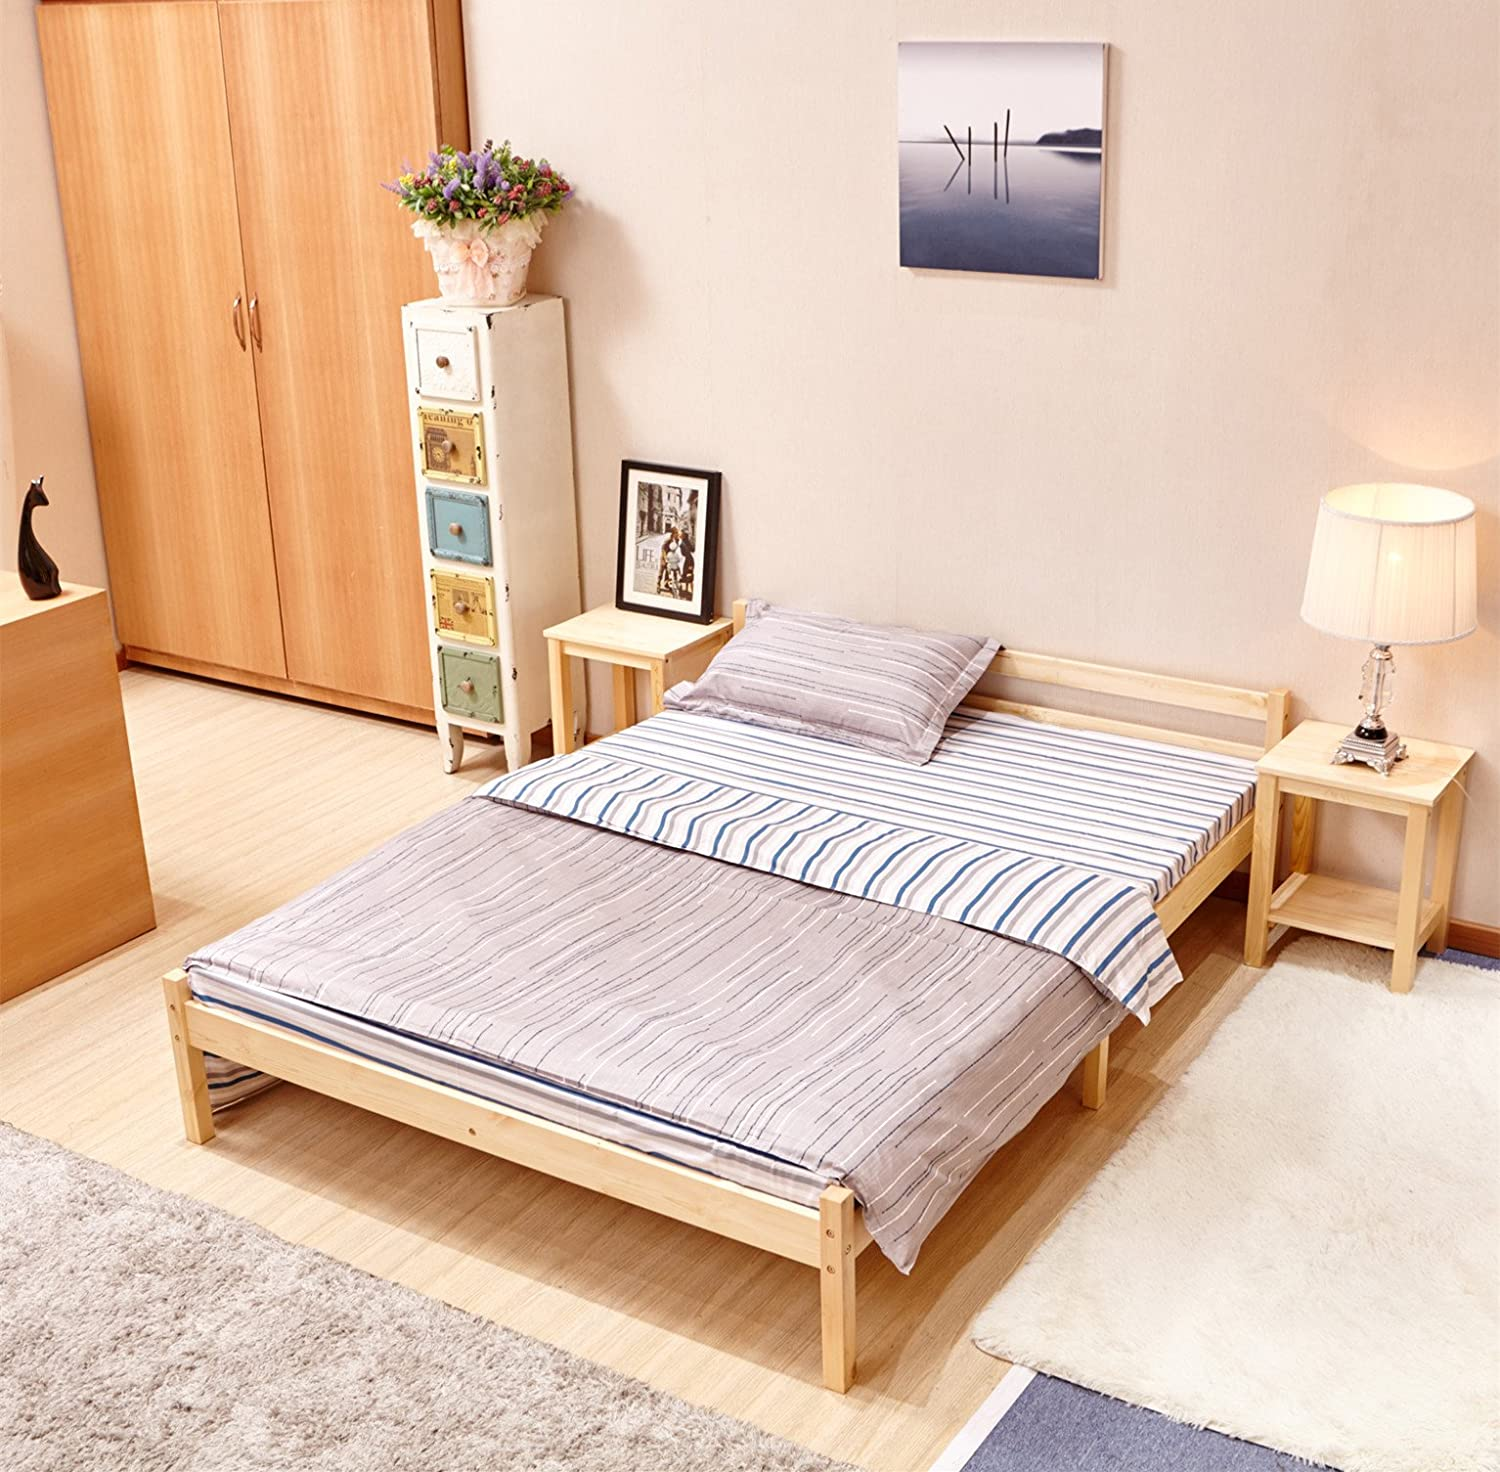 Solid steady easy assemble pine bed double wooden frame colour ebay - Testiere letto ikea ...